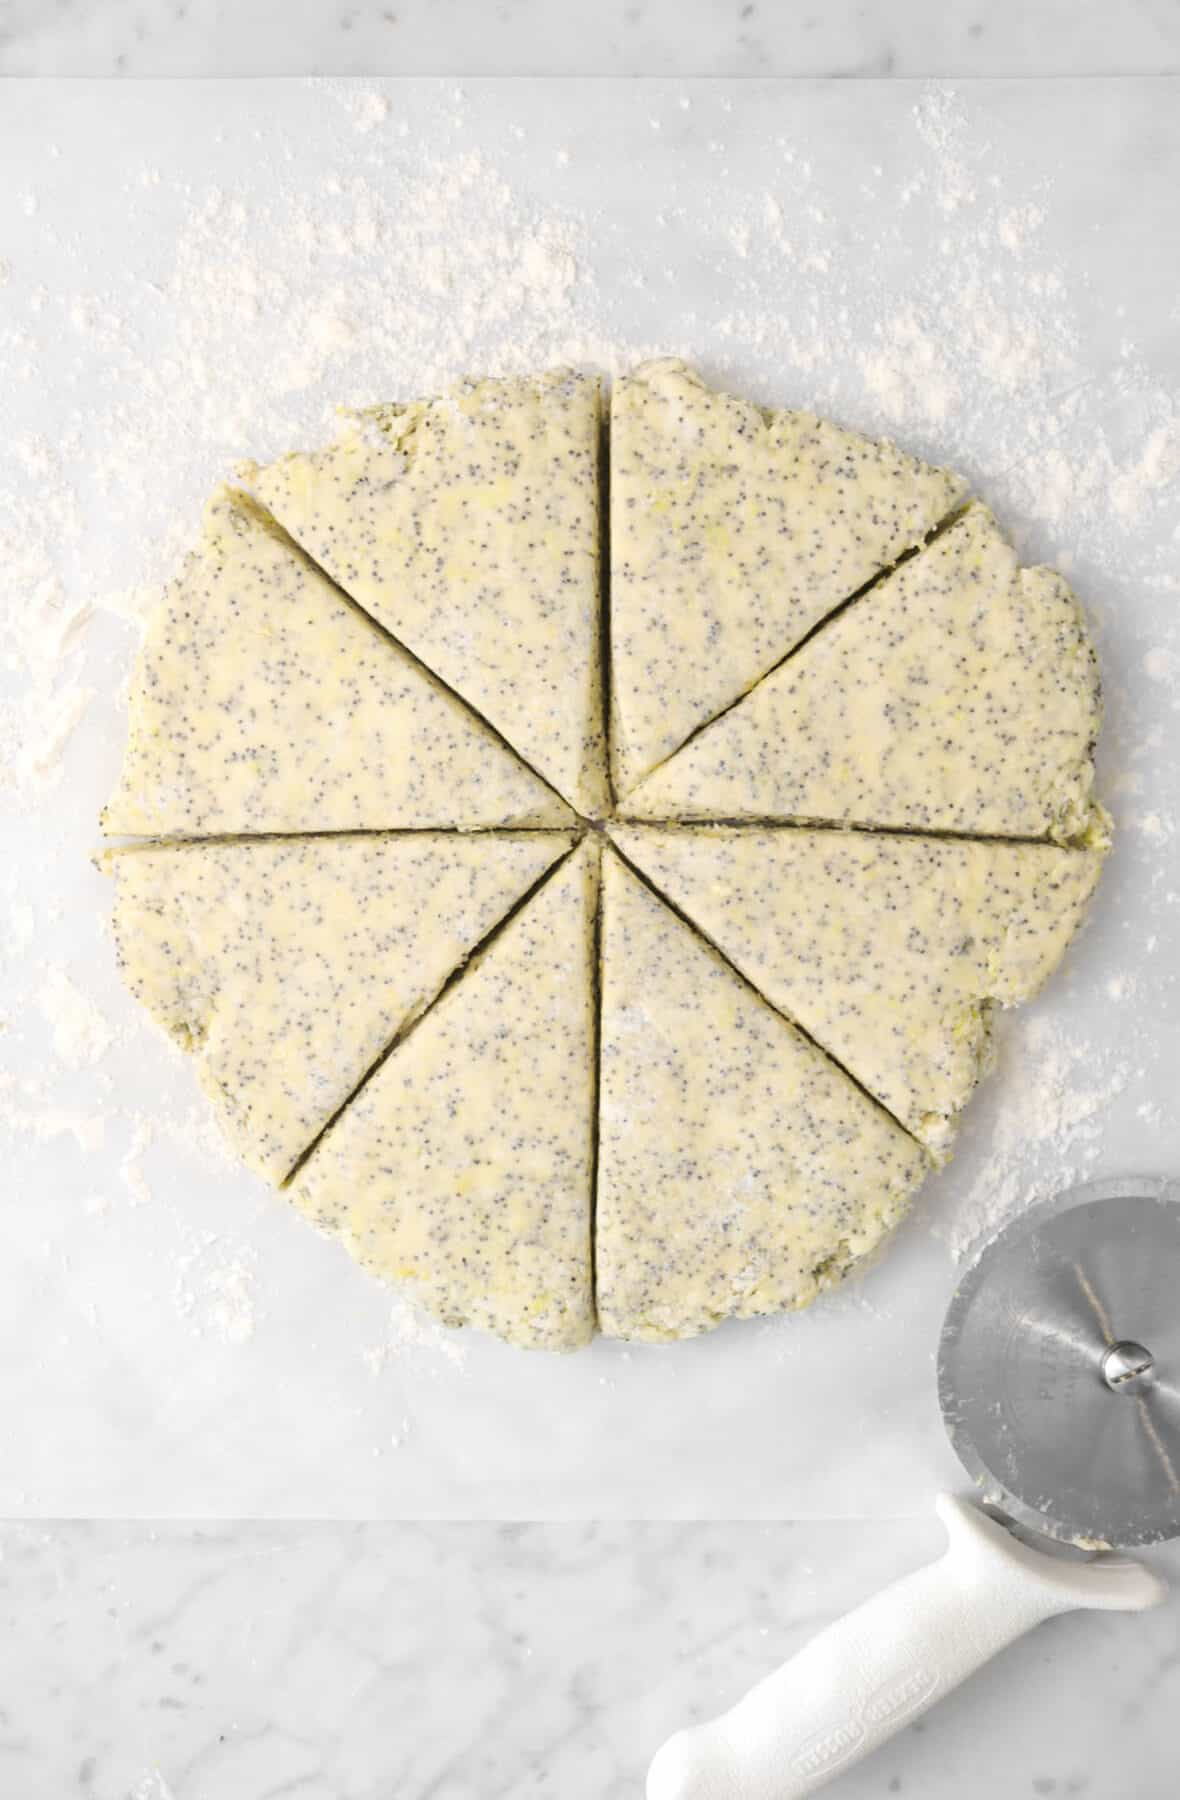 scone dough cut into eight slices on a piece of floured parchment with a pizza cutter